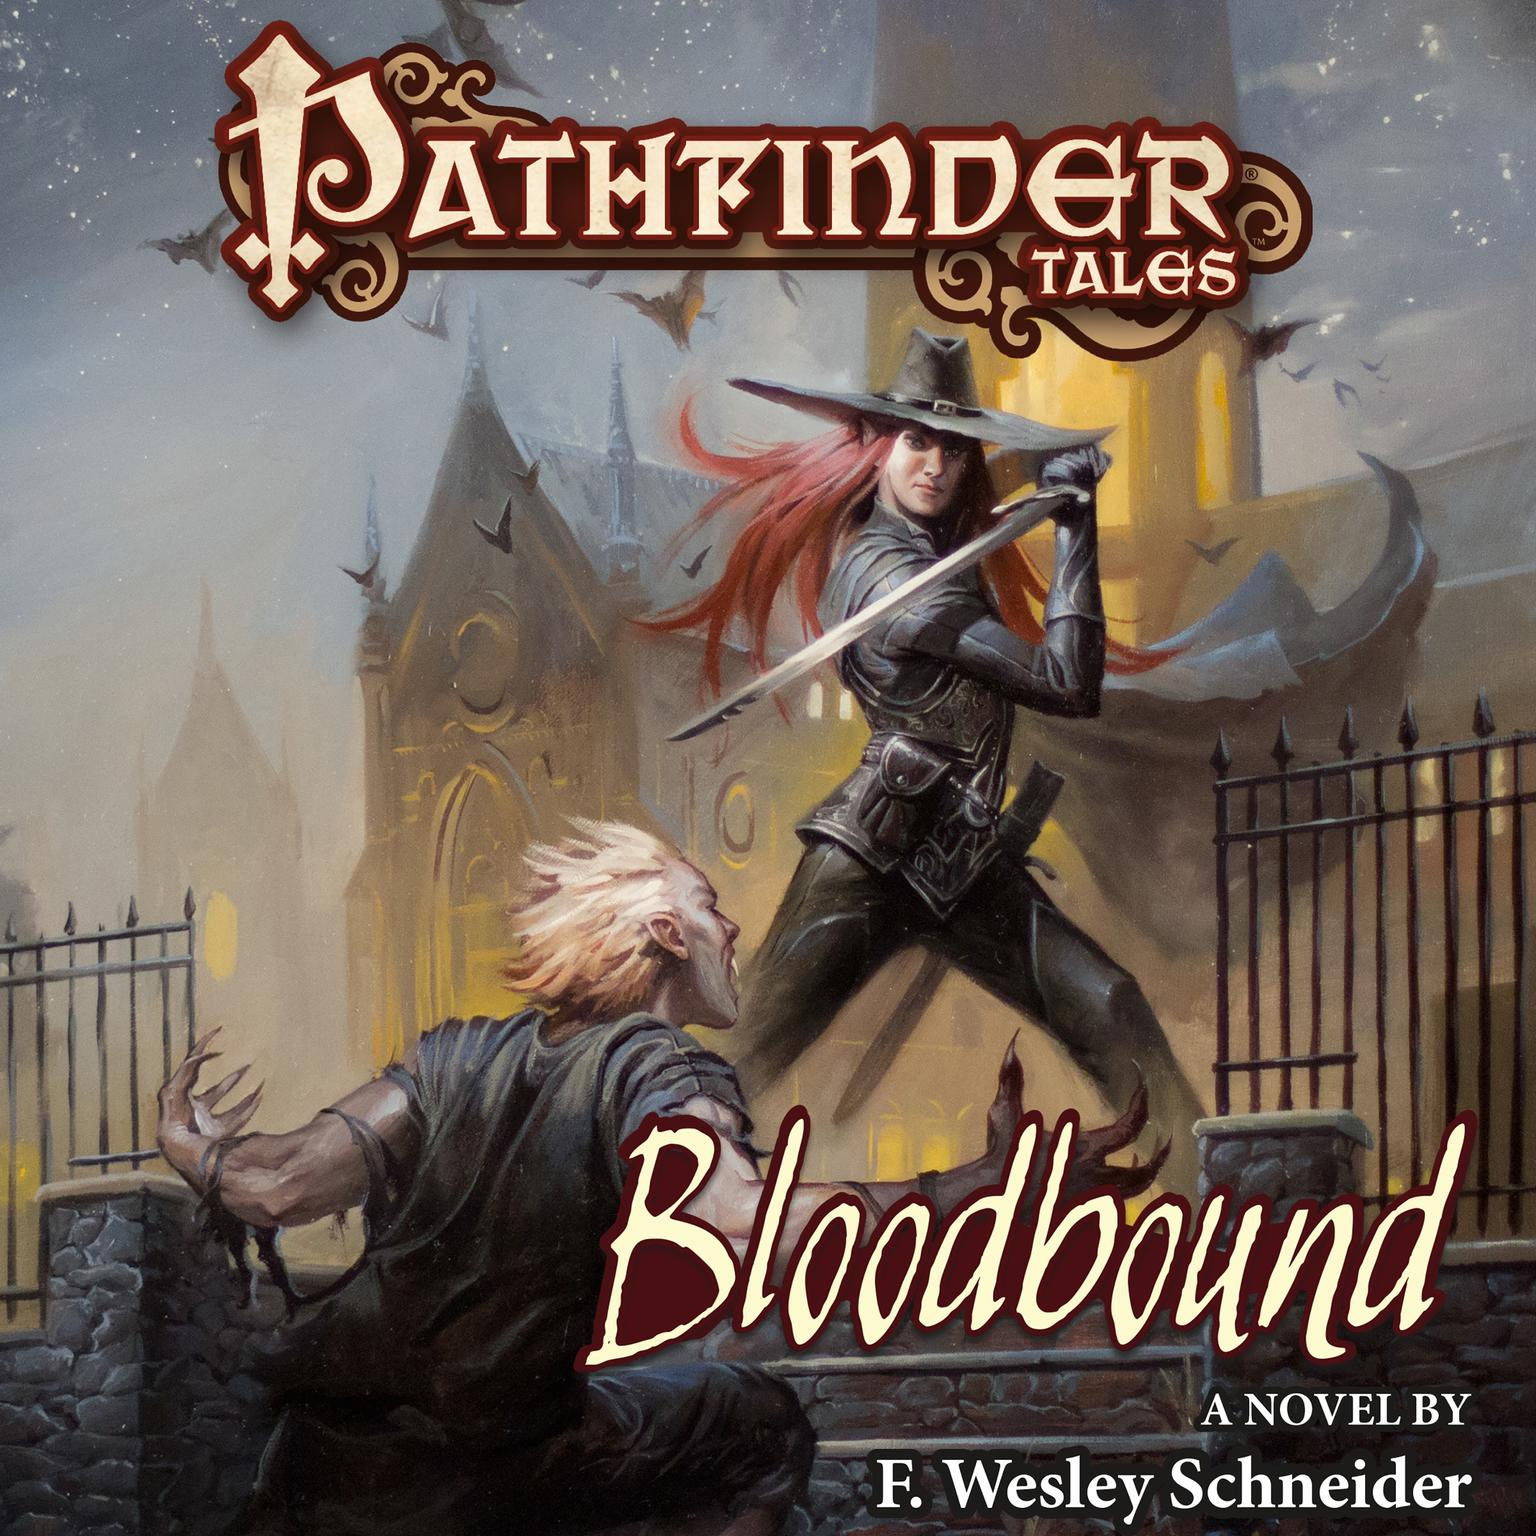 Printable Pathfinder Tales: Bloodbound Audiobook Cover Art